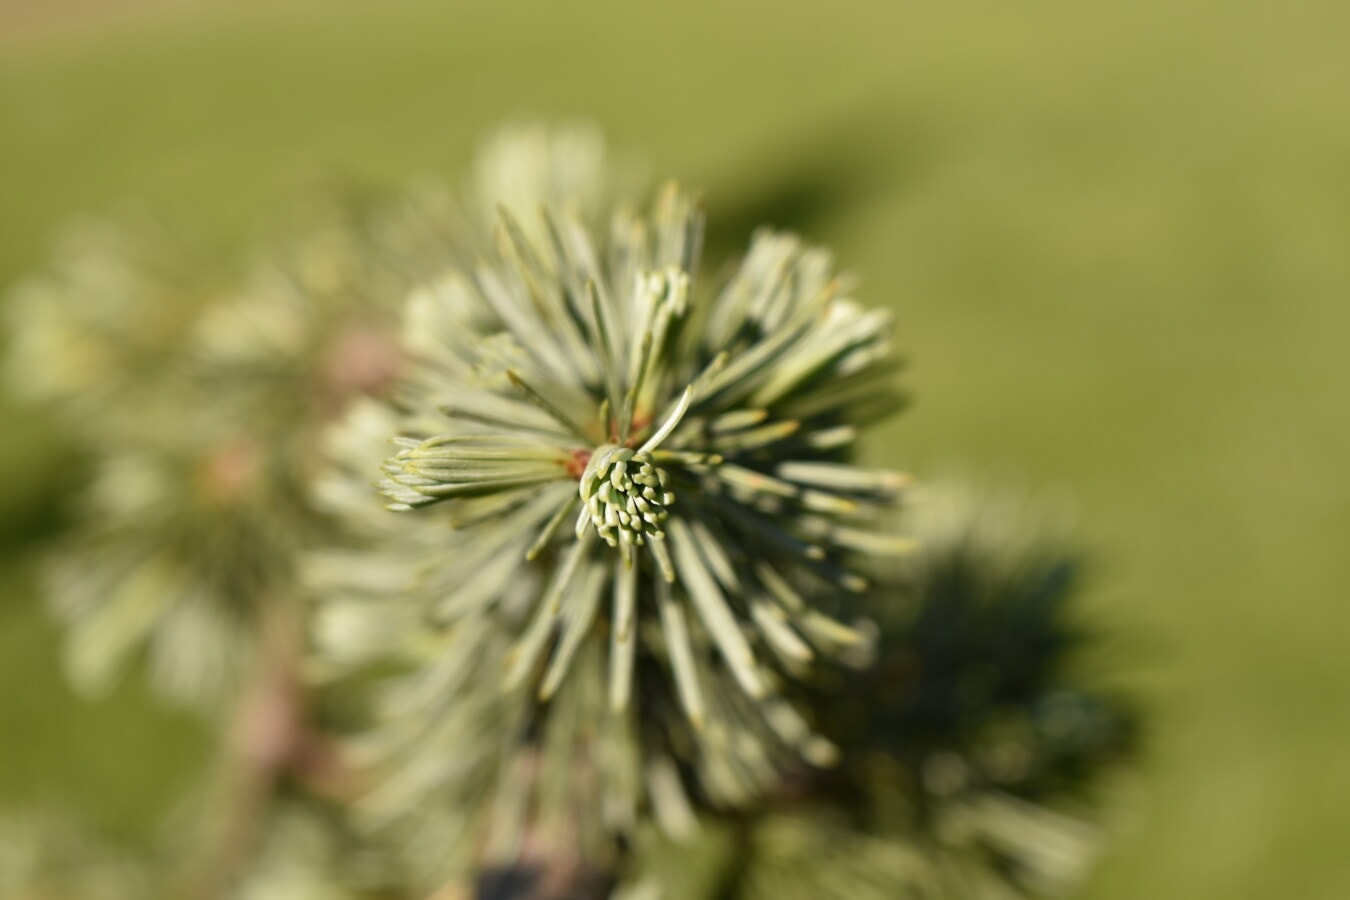 white spruce, macro, branches, green leaves, close-up, conifers, focus, blurry, tree, plant